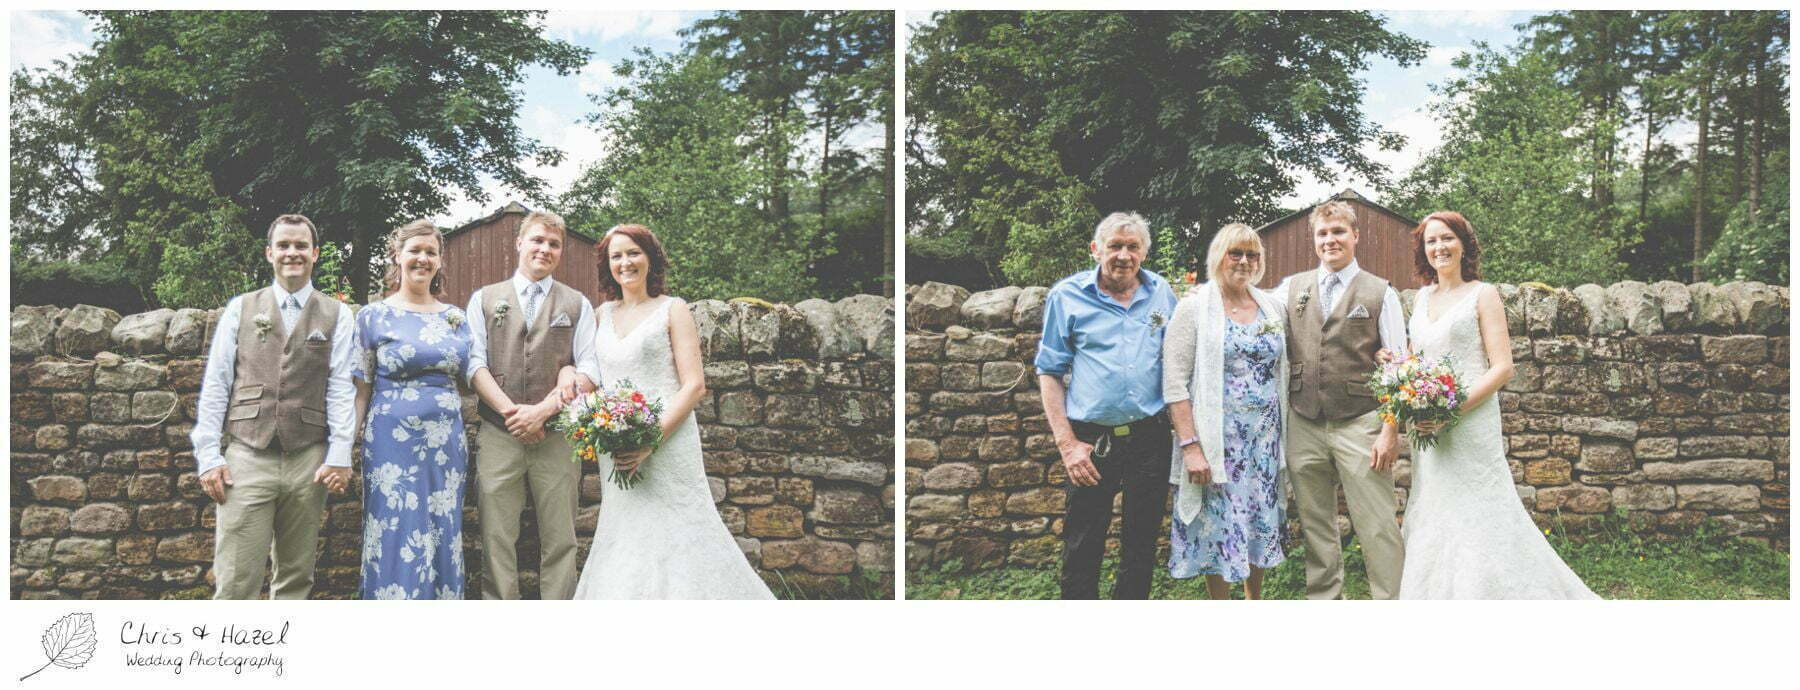 wedding formal photographs woodland, eco wedding, wedding, Eccup Wedding Photographer, Lineham Farm, Wedding Photography Leeds, Chris and Hazel Wedding Photography, Richard Wyatt, Laura Kelly